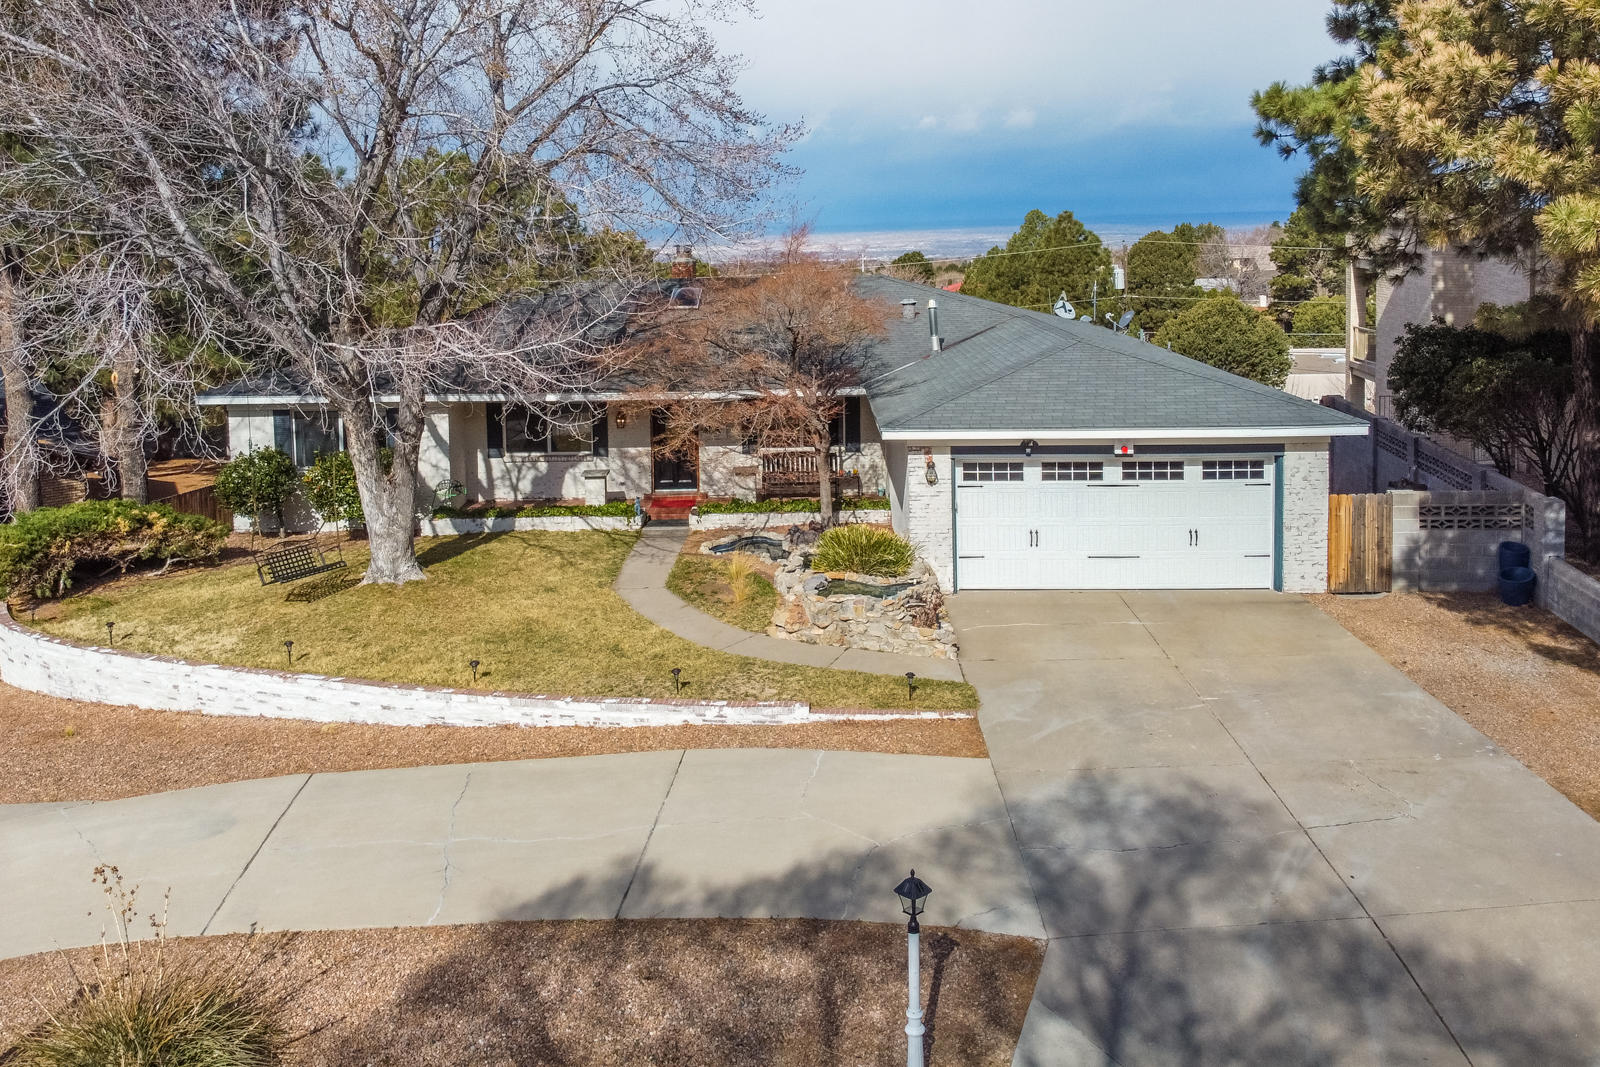 You really CAN have it all! Beautiful mountain views, swimming pool, tennis court (resurfaced 2018) , refrigerated air (2017), water feature, & a retro 50's dining area all on a cul de sac street! Exterior bricks are are done in an Old World style brick finish giving it the appearance of European whitewash! Kitchen appliances less than 3 yrs old. Hot water heater replaced Feb 2020. Electrical panel upgraded fall of 2019. AquaSauna home filtration & water softener less than 3 yrs old. Updates made to dining room, bonus room, living room, master bedroom, & deck. Newer lighting fixtures, fresh landscaping, security system approx 2 yrs old. Garage doors approx 2 yrs old. Home inspection completed! Don't let this one get away! See it today!